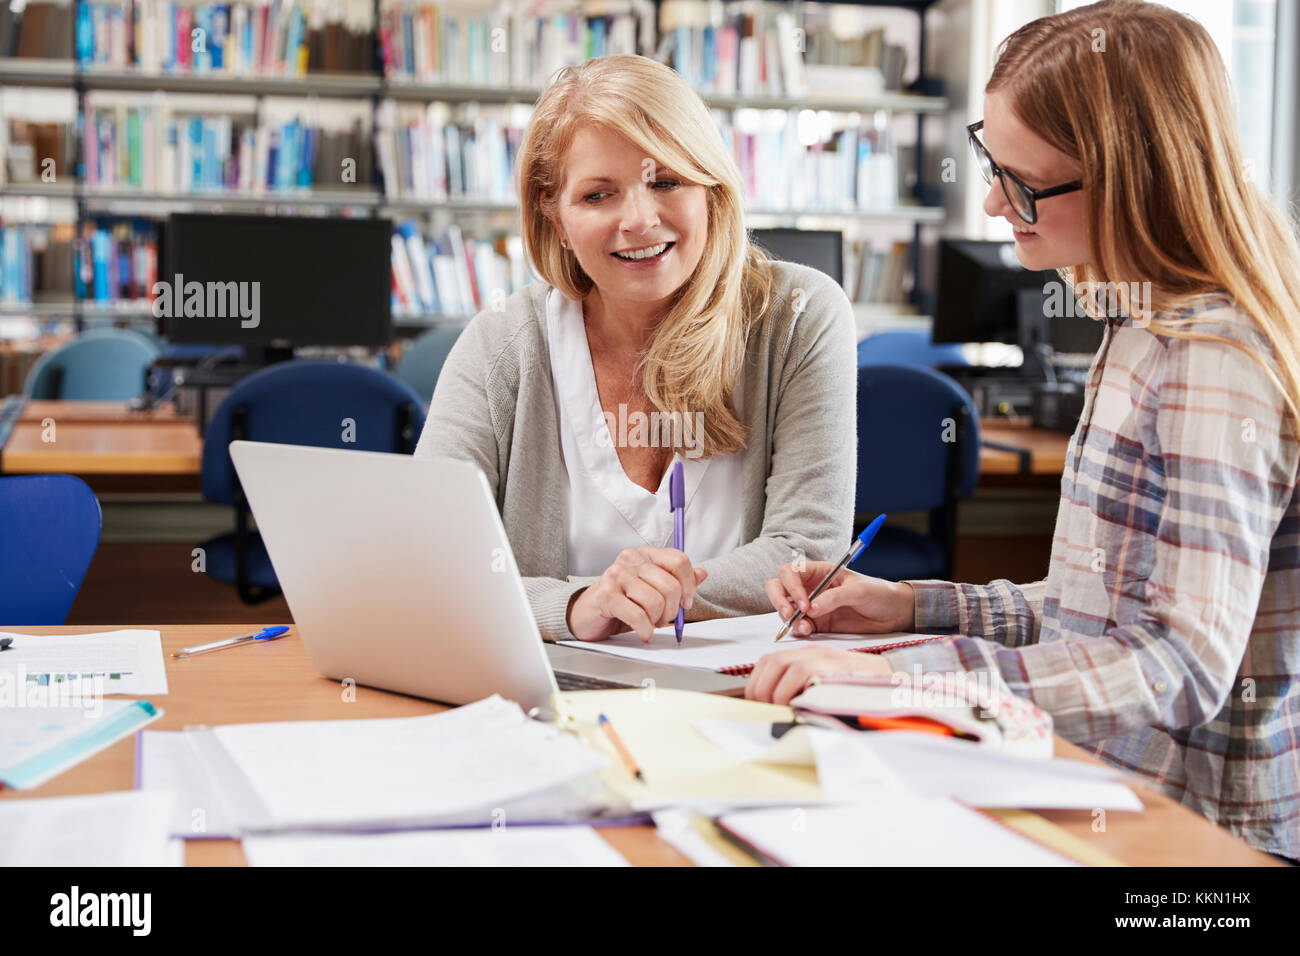 College Student Has Individual Tuition From Teacher In Library - Stock Image